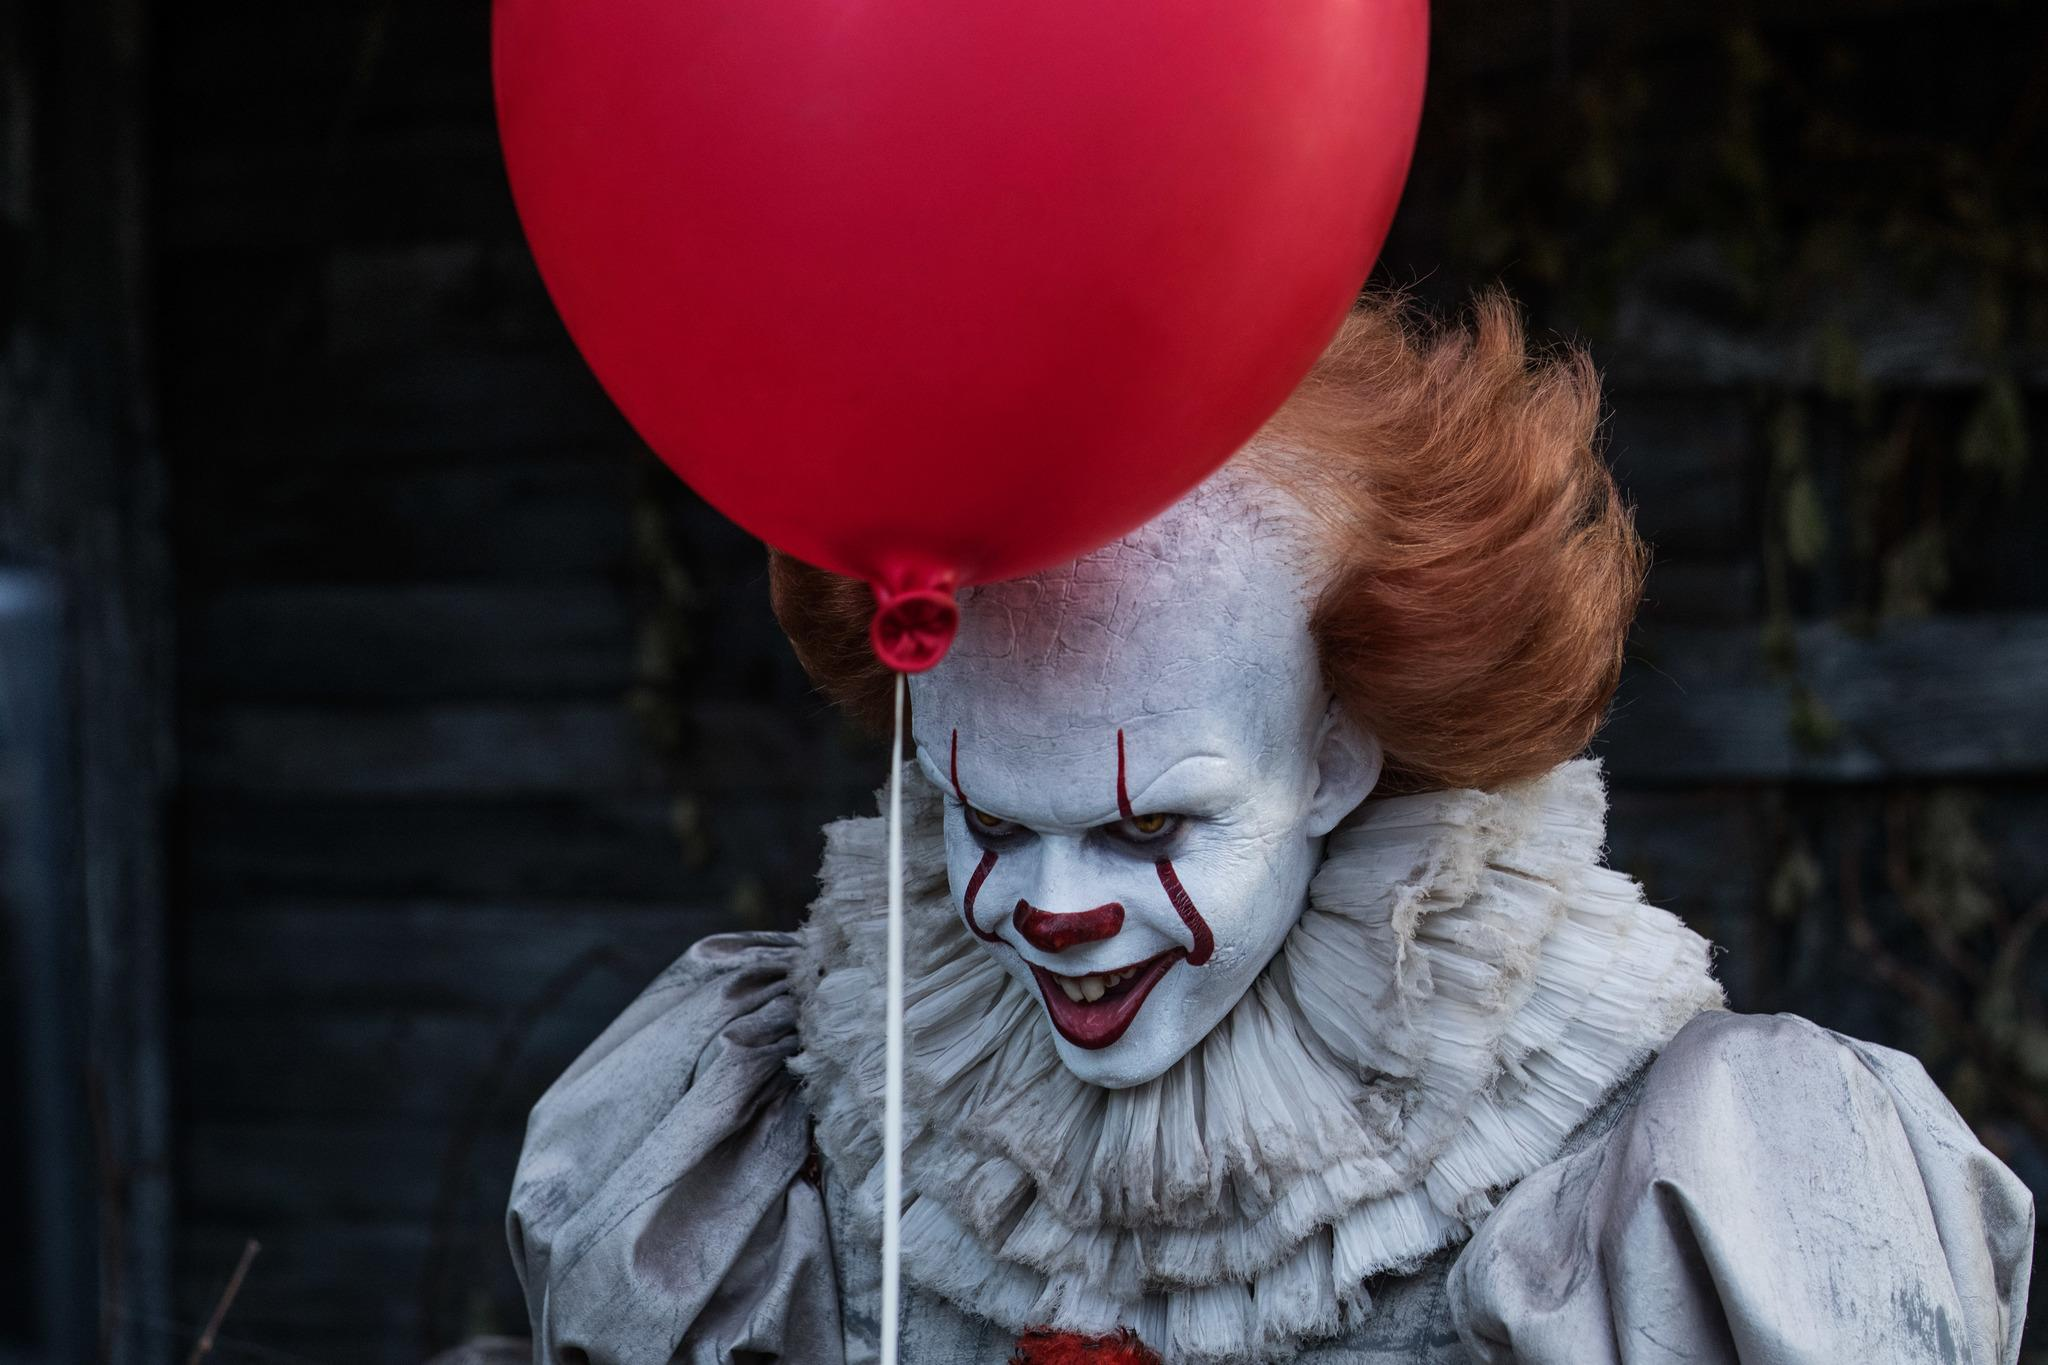 'It: Chapter 2' Director Andy Muschietti Says 'Bring Your Adult Diapers'